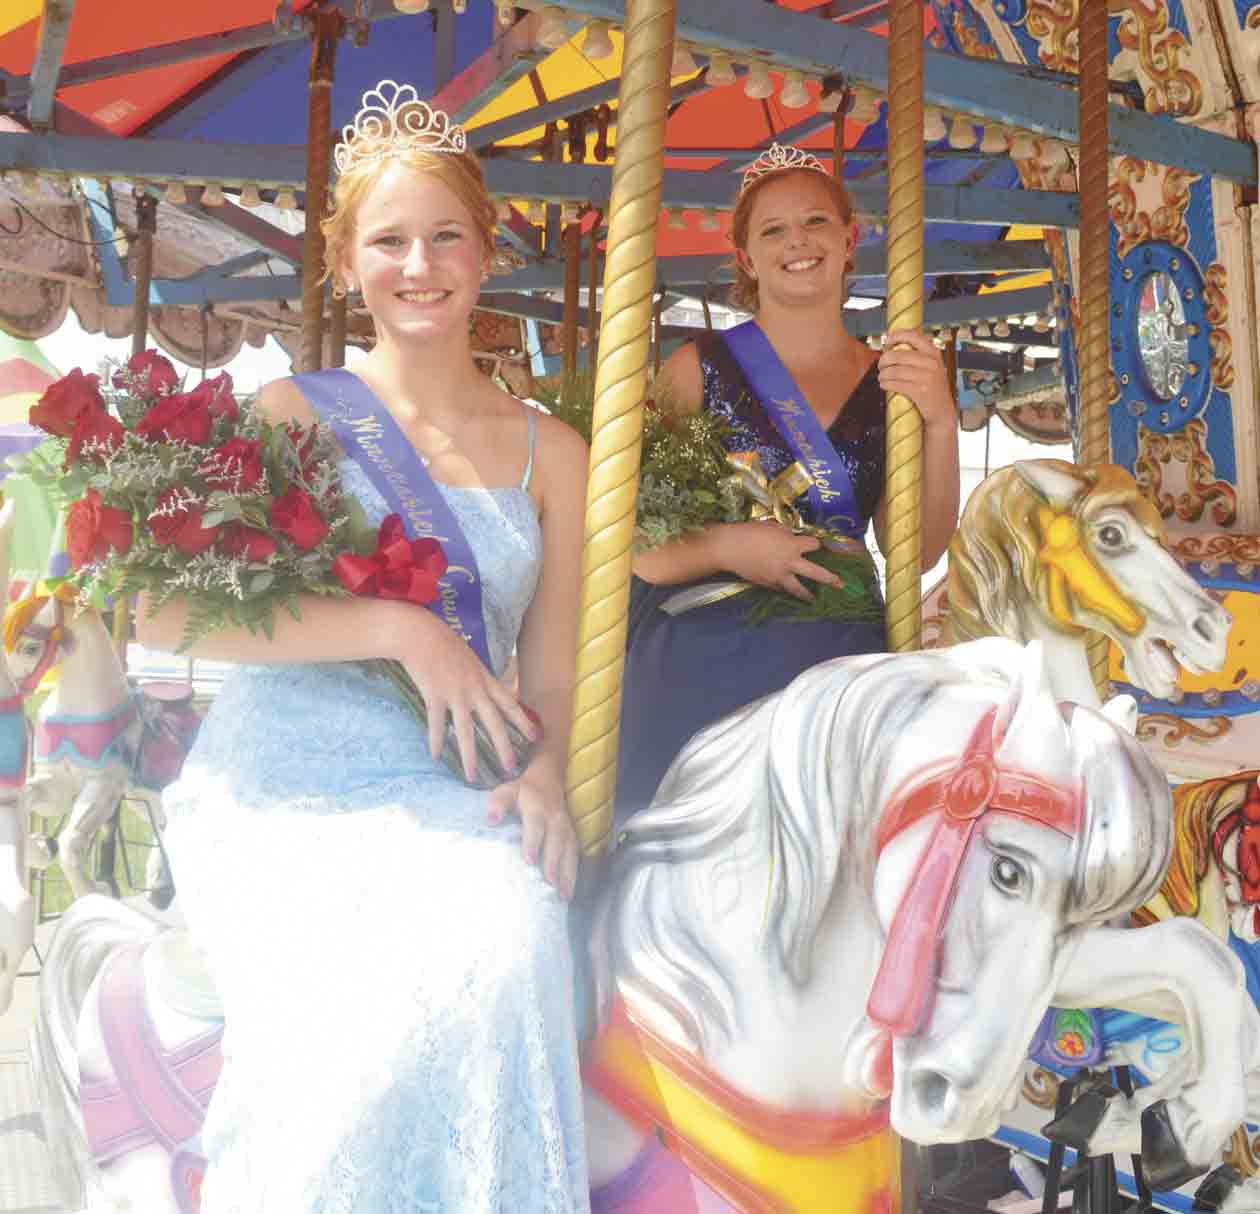 The 2021-22 Winneshiek County Fair royalty is Queen Holly Schmitt (left) and Princess Kalissa Schmelzer. Be sure to check out next week's Ossian Bee for more photos and 4-H/FFA show results. (Zakary Kriener photo)Winneshiek County Fair royalty